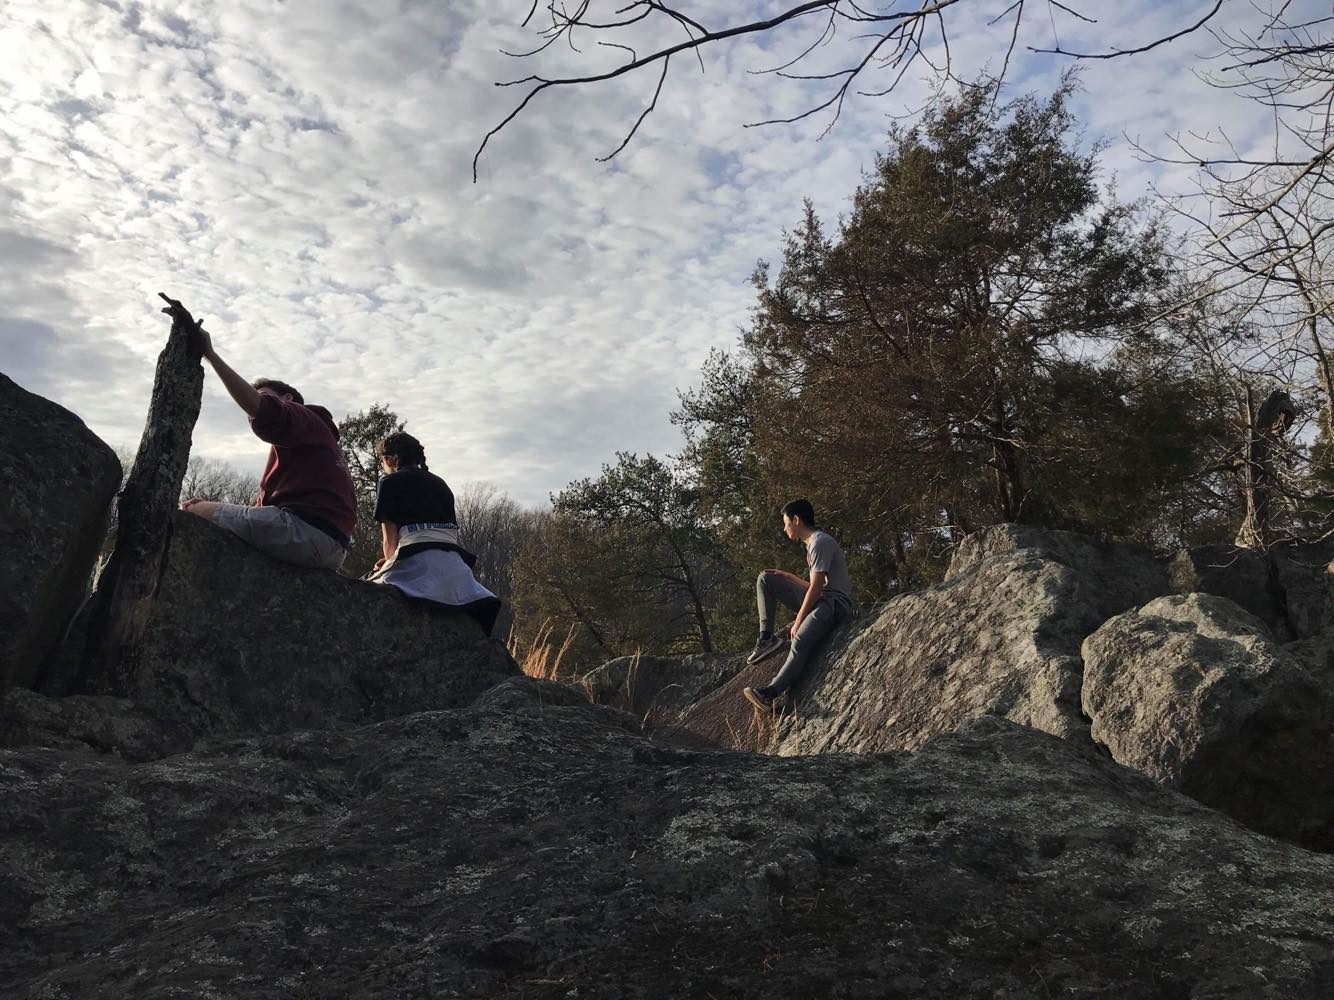 Hiking Viking members trek on the Billy Goat Trail.  Members hike together once a month. Photo courtesy Rowan Mohan.